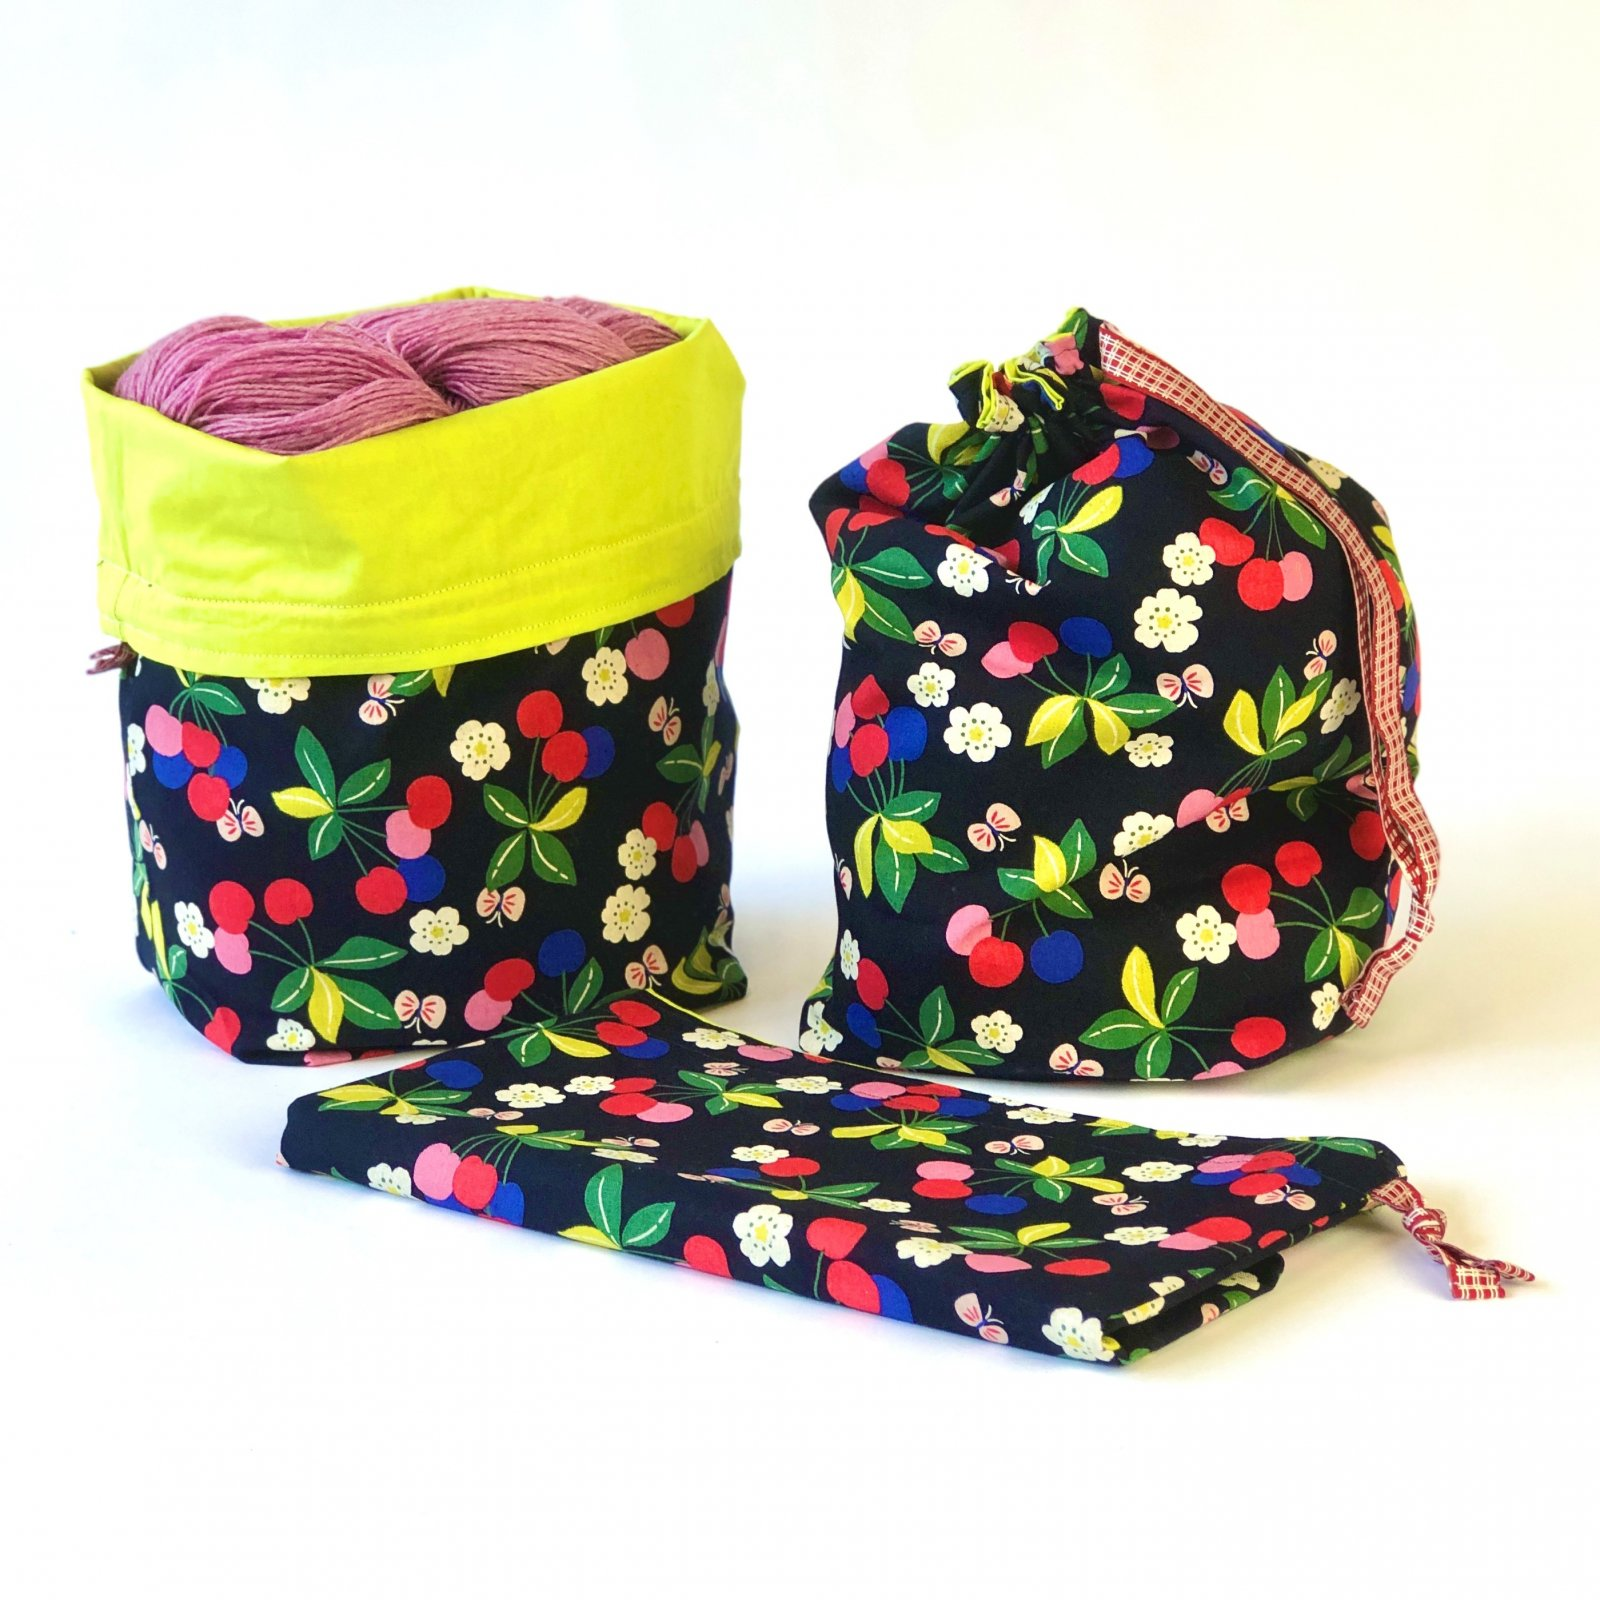 Cheery Cherries - Makers' Exclusive Project Bag